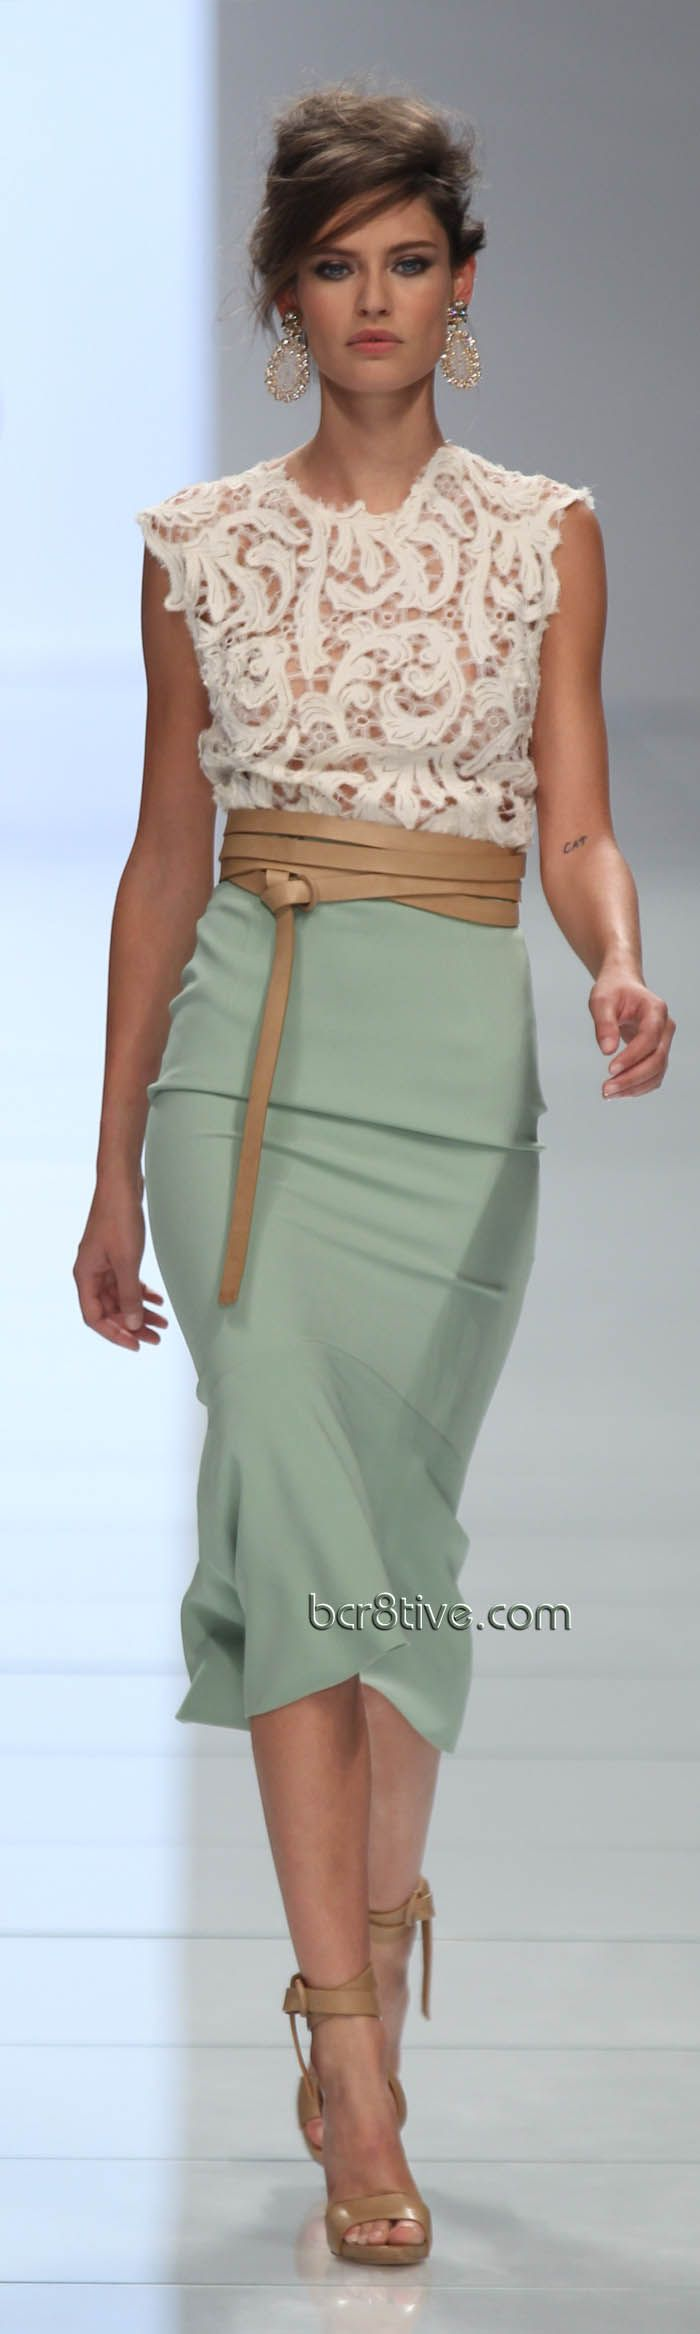 Ermanno Scervino Spring Summer 2012 Ready to Wear